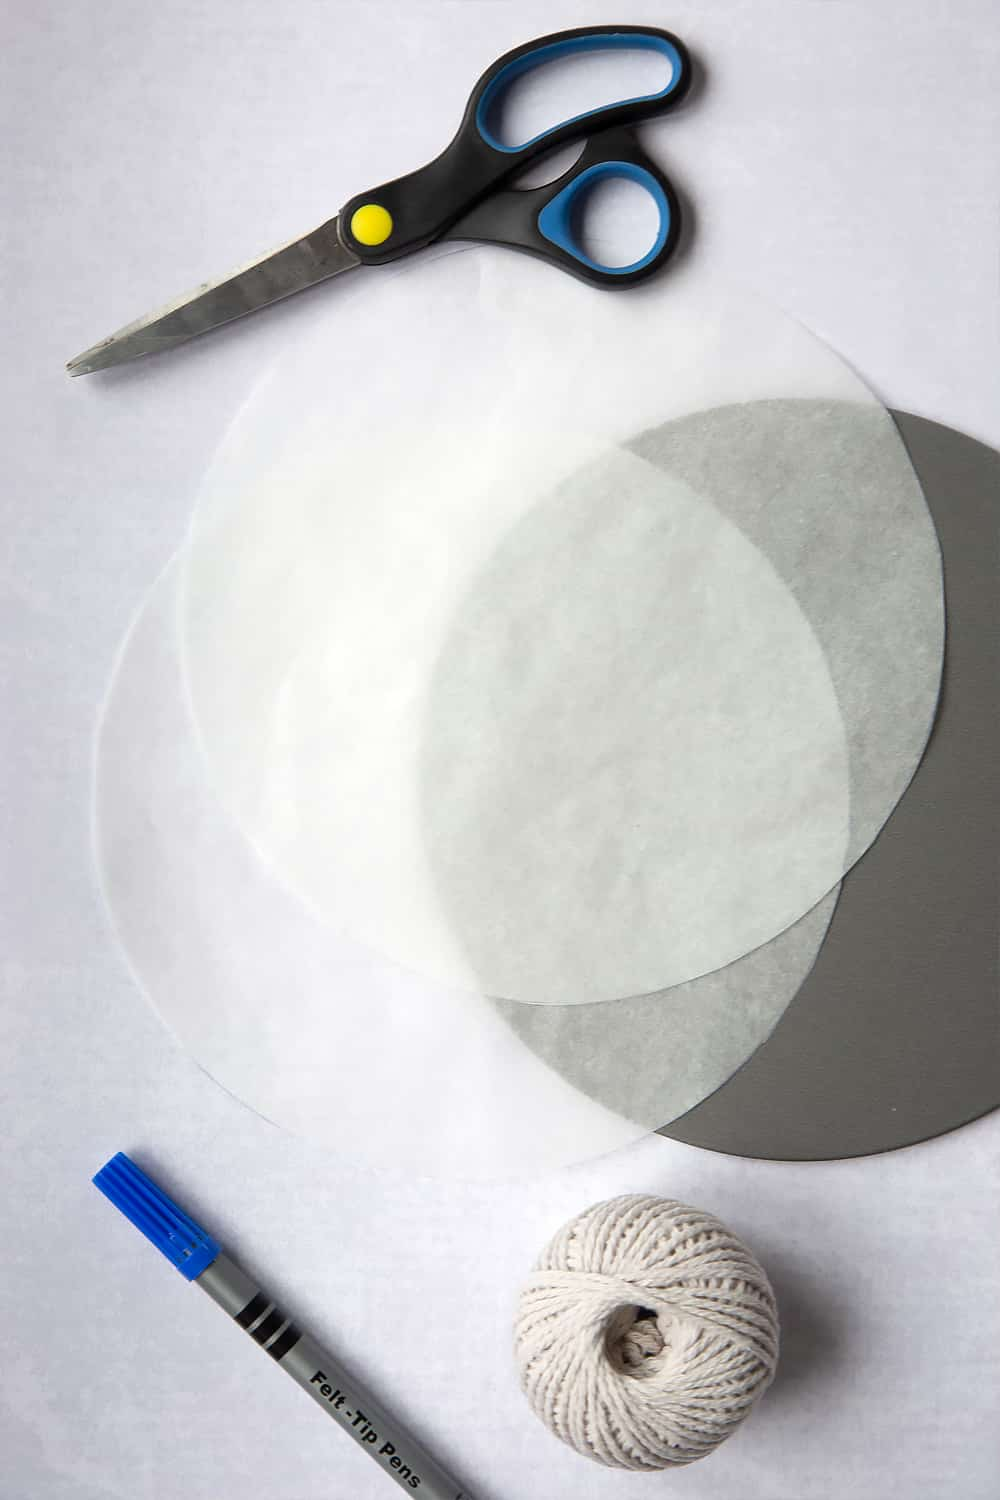 Two circles cut out using scissors from the circle previously made with a pen in step one of How to line a Christmas cake tin.